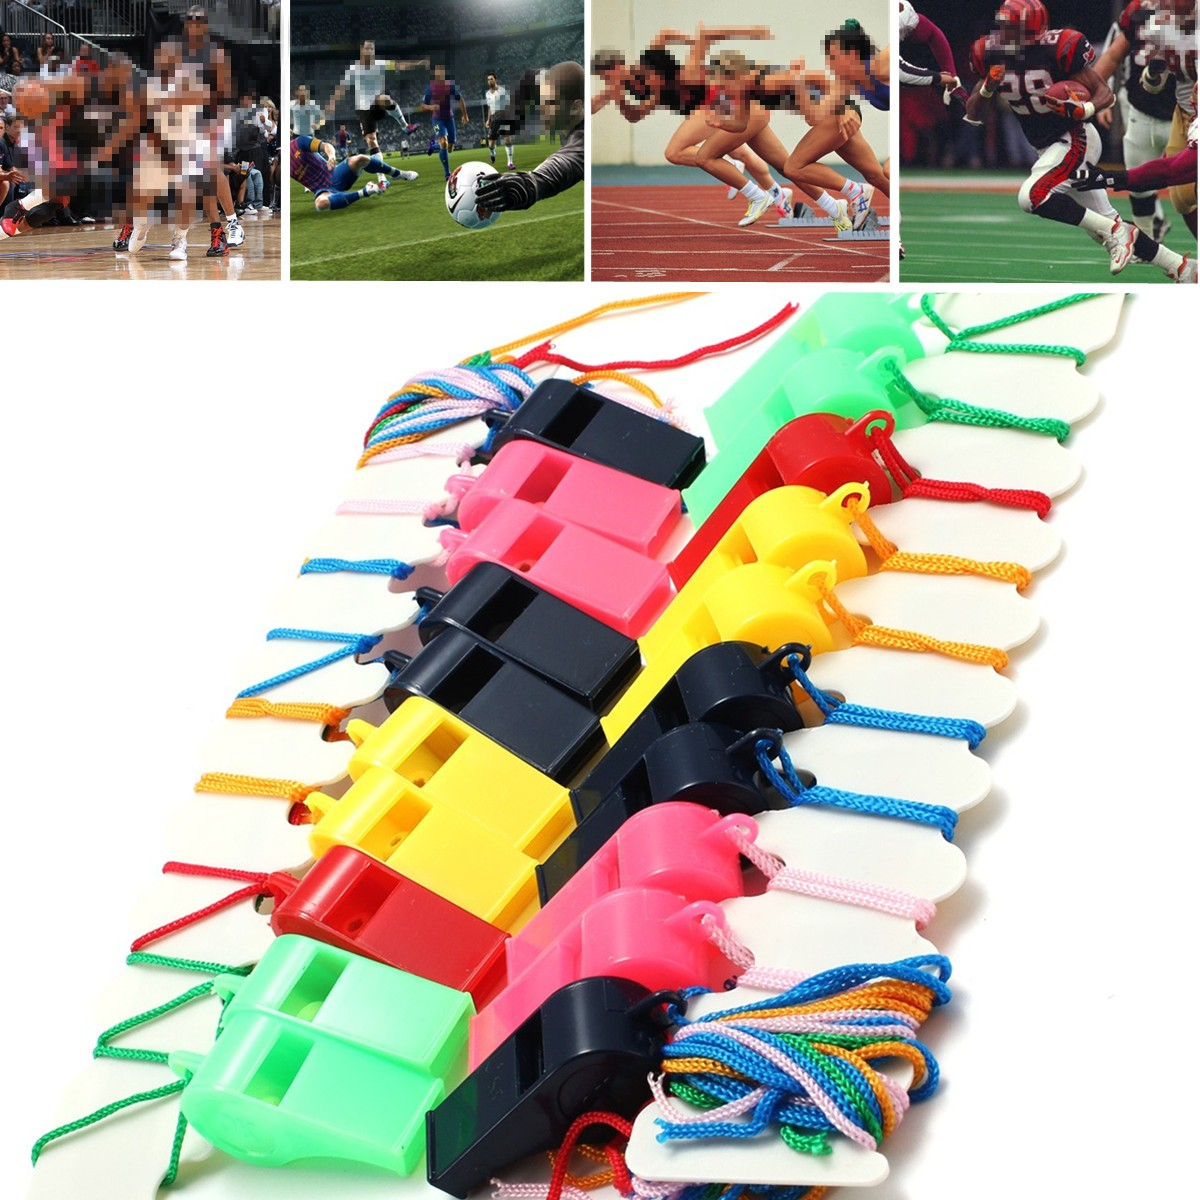 20Pcs Whistle Plastic Soccer Football Basketball Hockey Baseball Sports Referee Whistle Cheerleaders Cheer Survival Outdoor